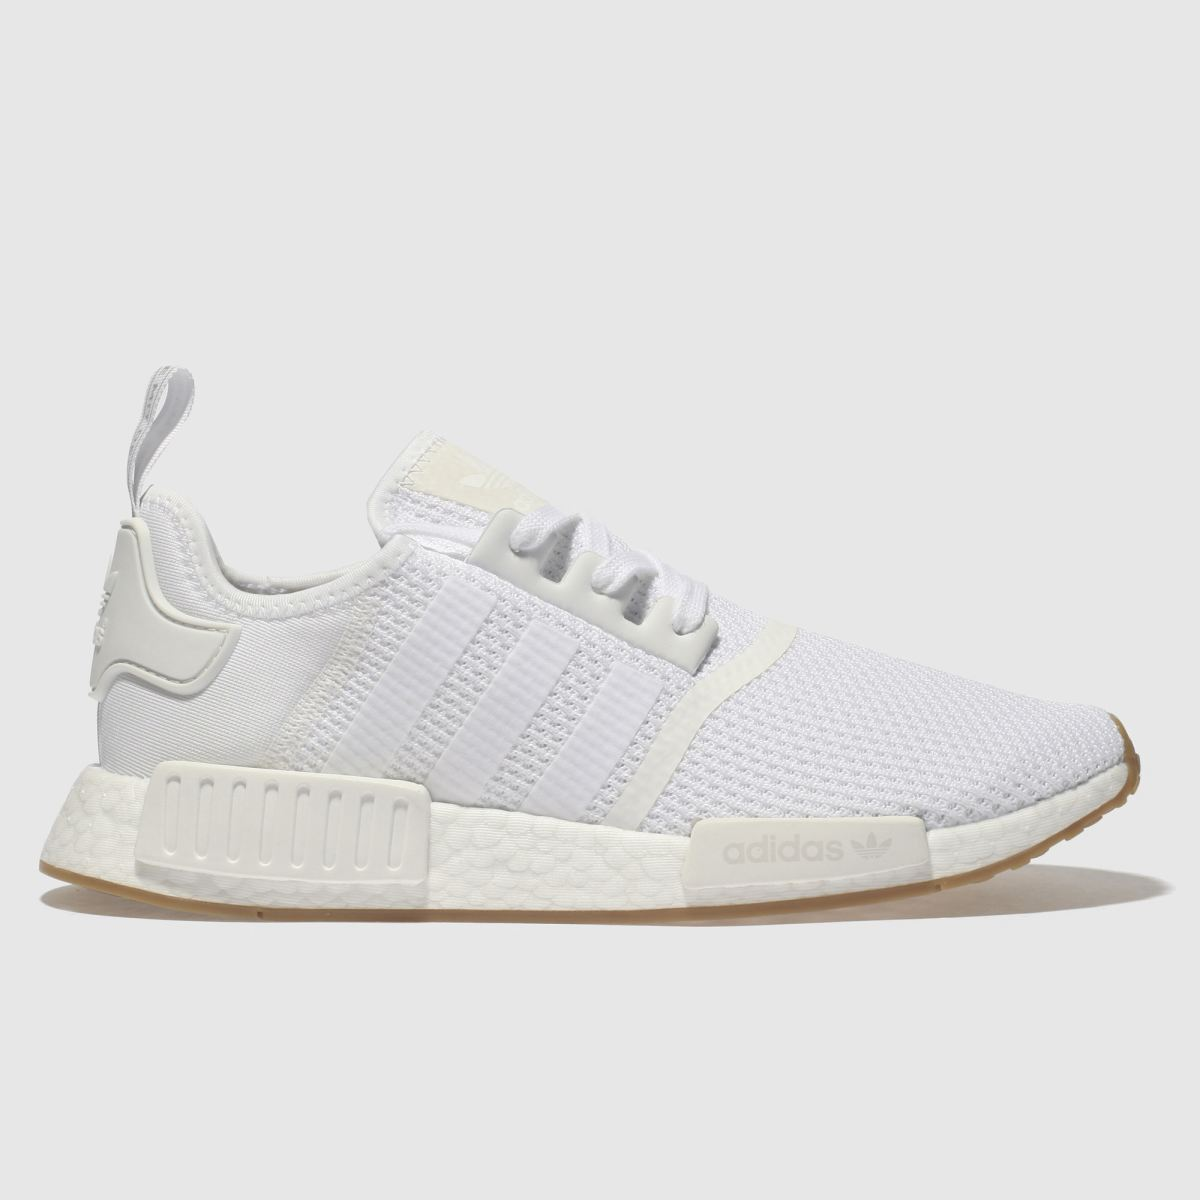 Adidas White Nmd_r1 Trainers